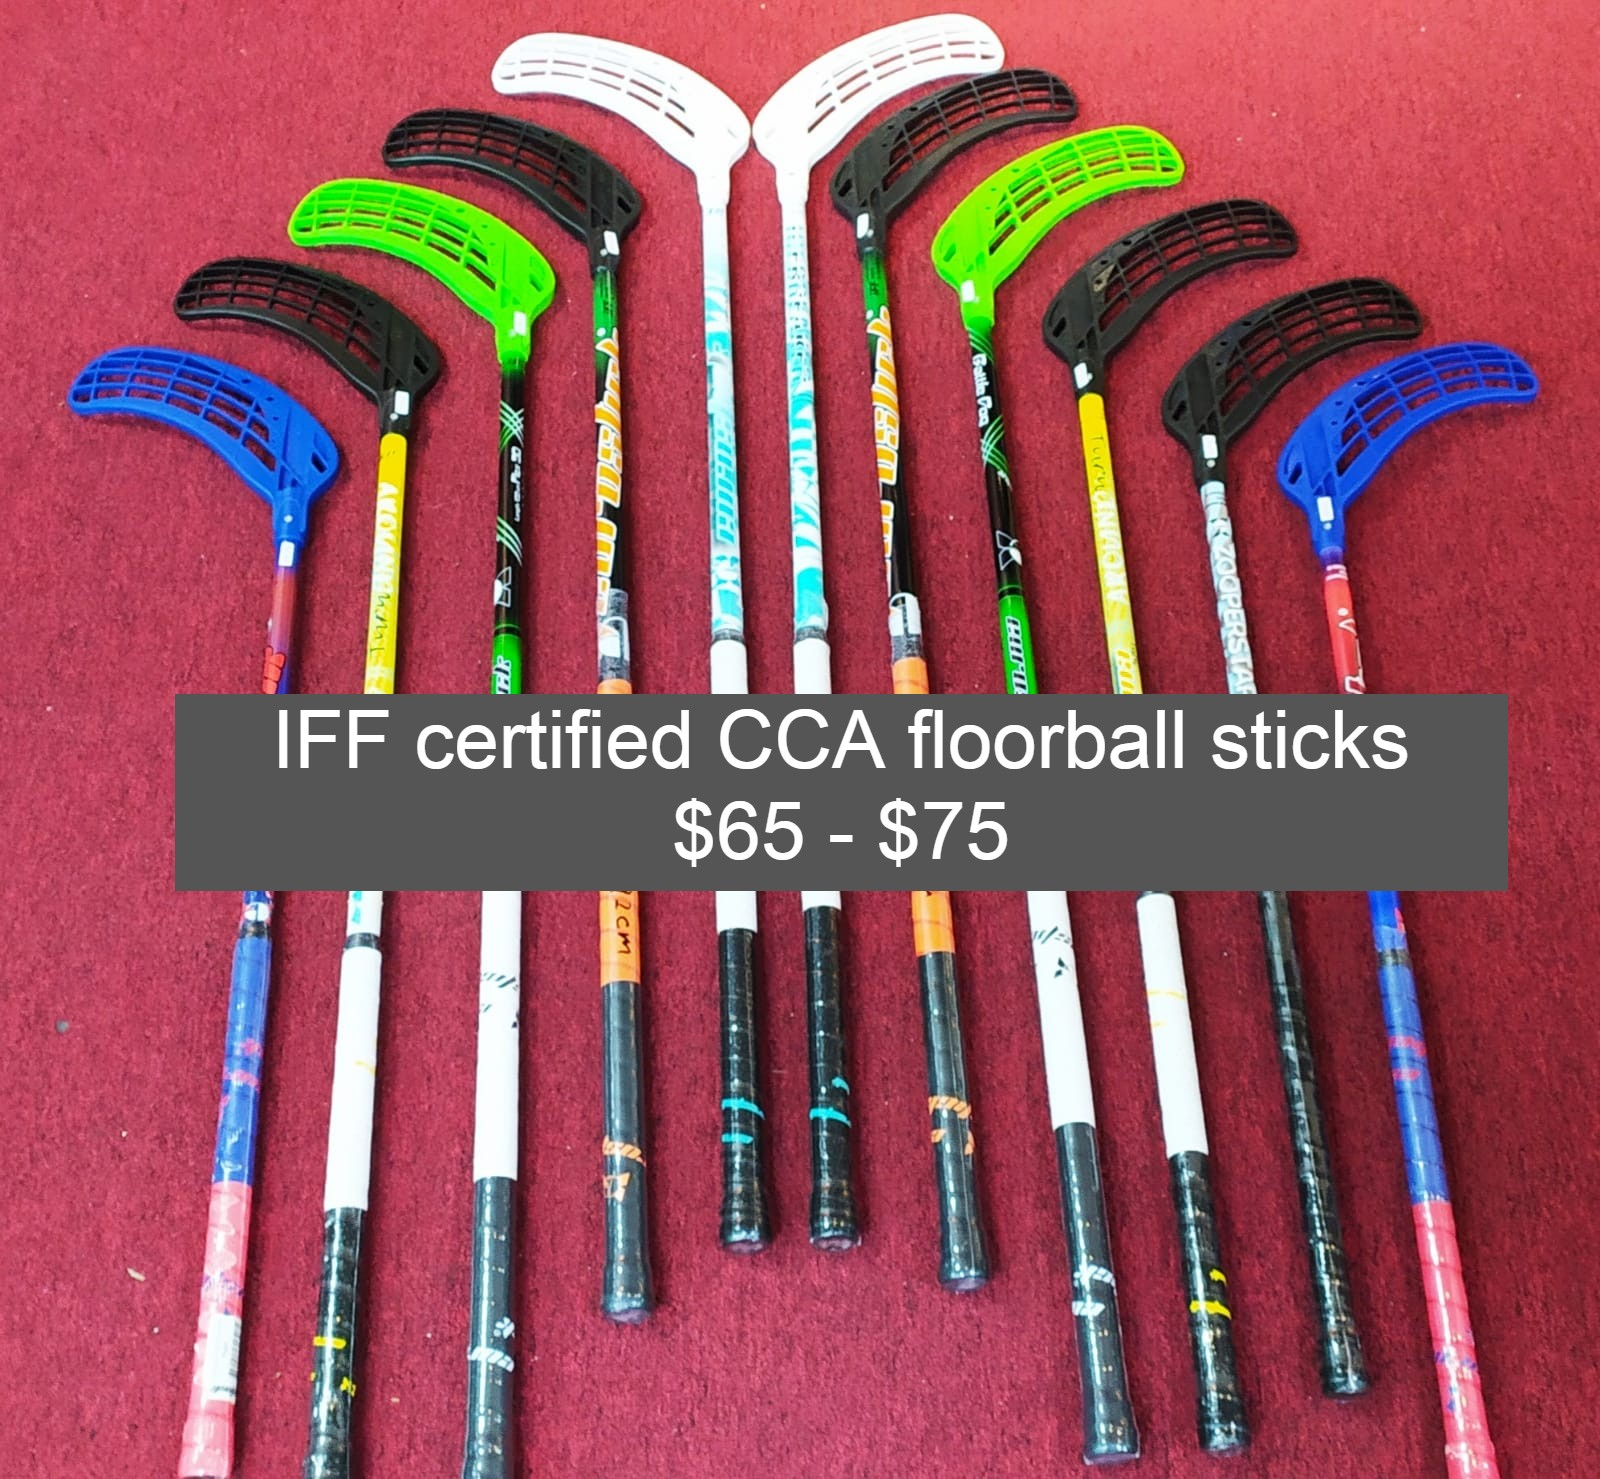 Iff certified cca floorball sticks